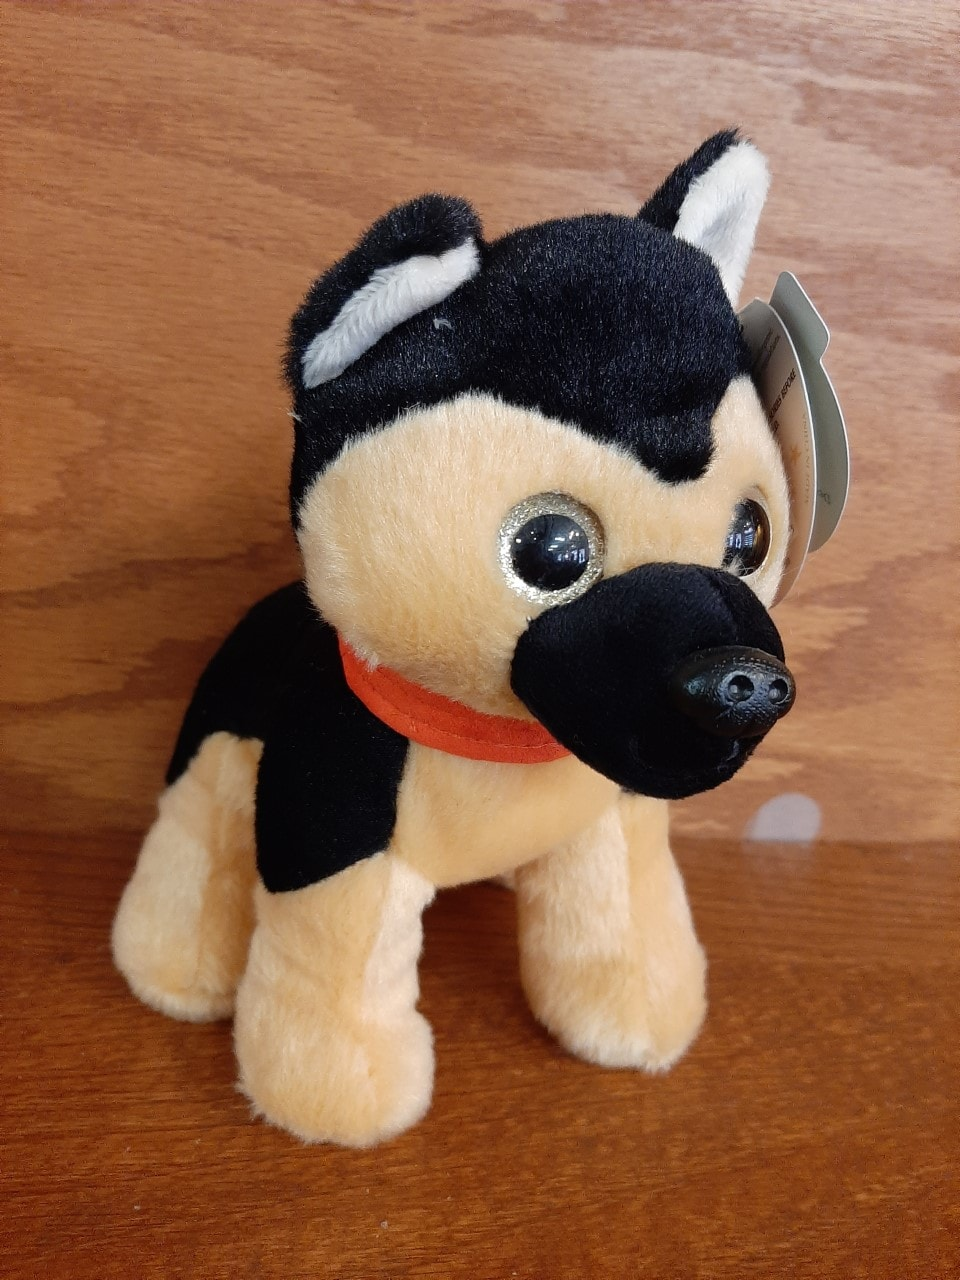 Stuffed Animal - German Shepherd